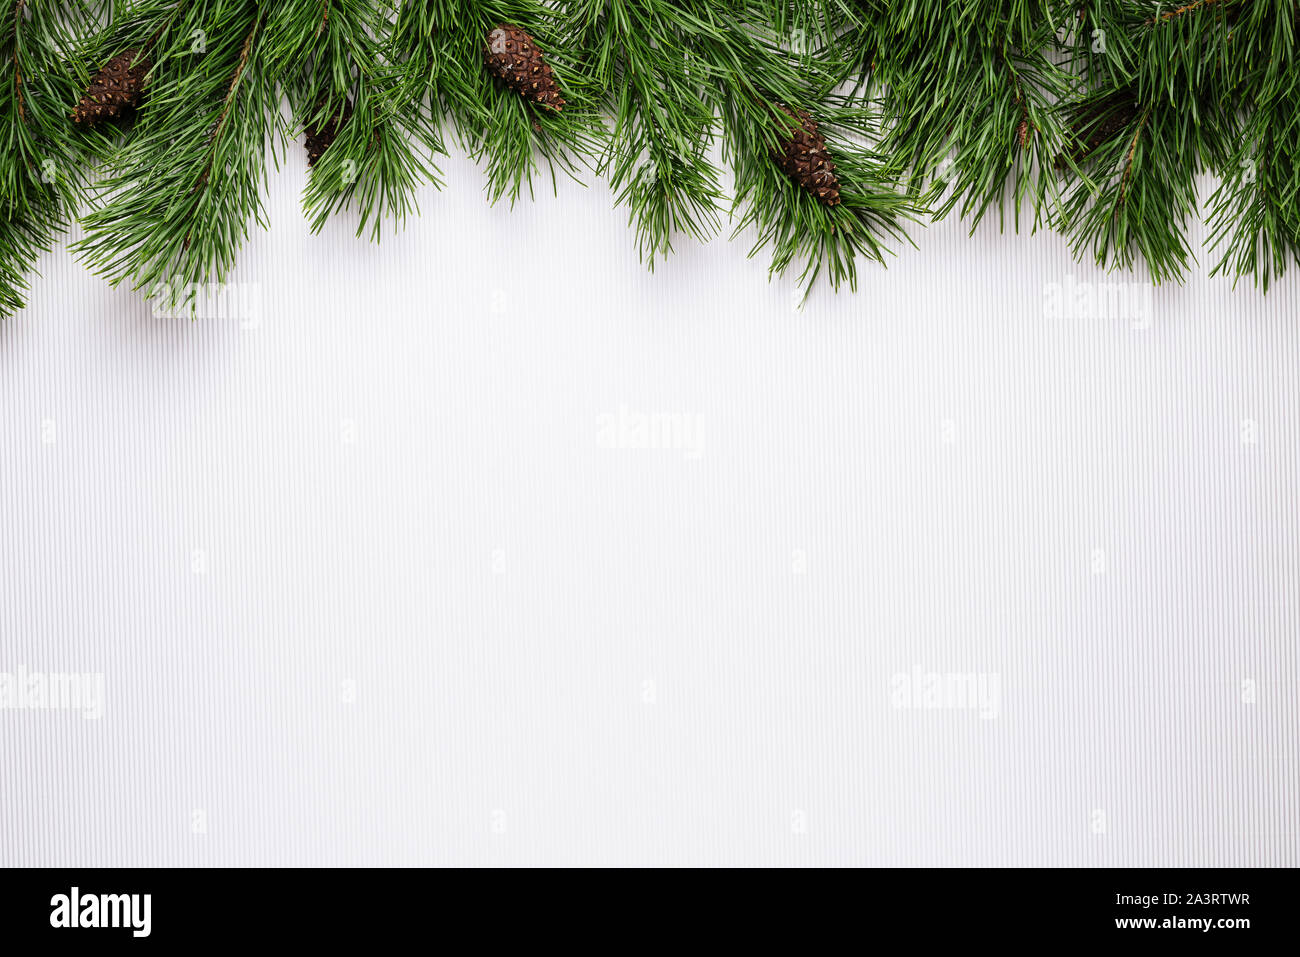 merry christmas or new year white background with pine branch border stock photo alamy alamy